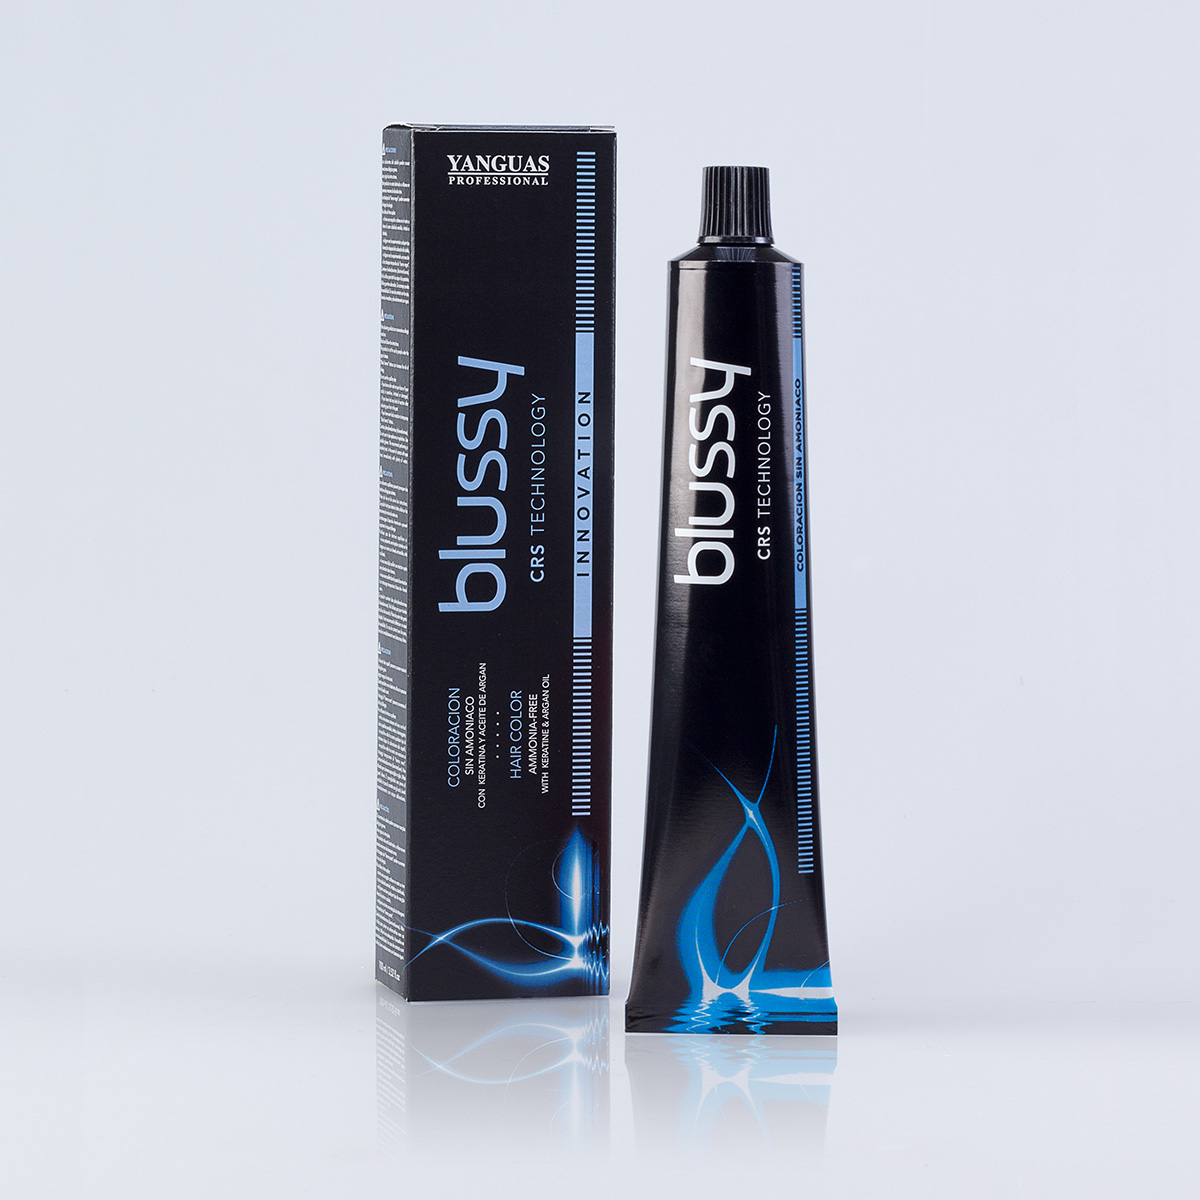 Tinte Sin Amoniaco Blussy Hair - Yanguas Professional